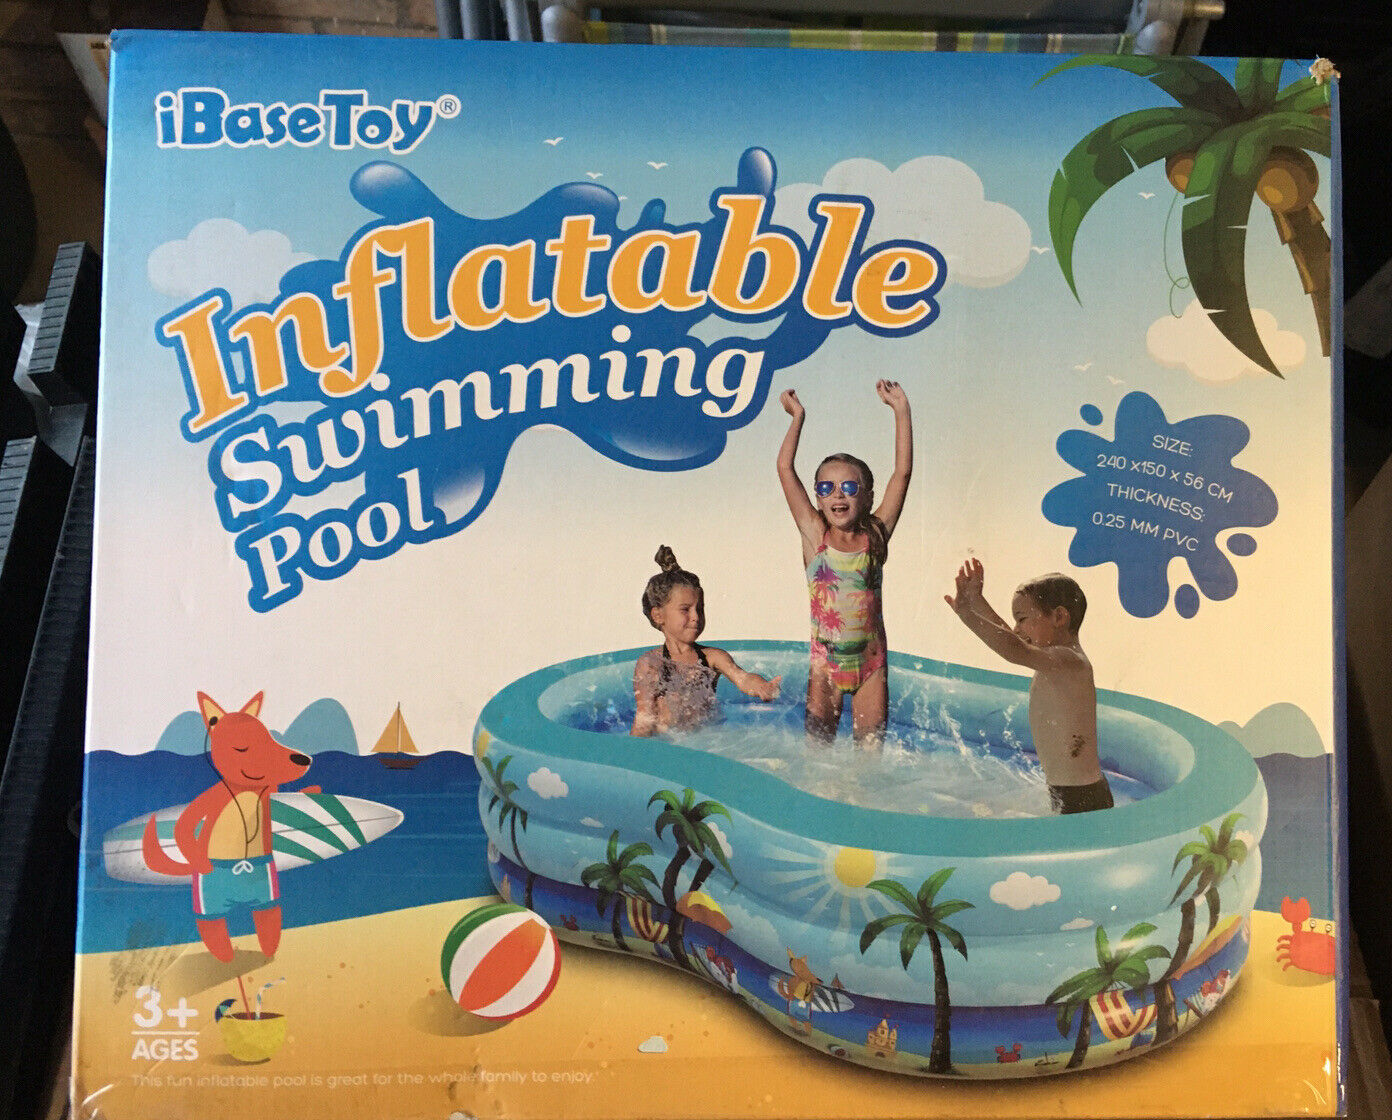 Inflatable Swimming Pool, 240 x 150 x 56cm. Large Family Inflatable Pool